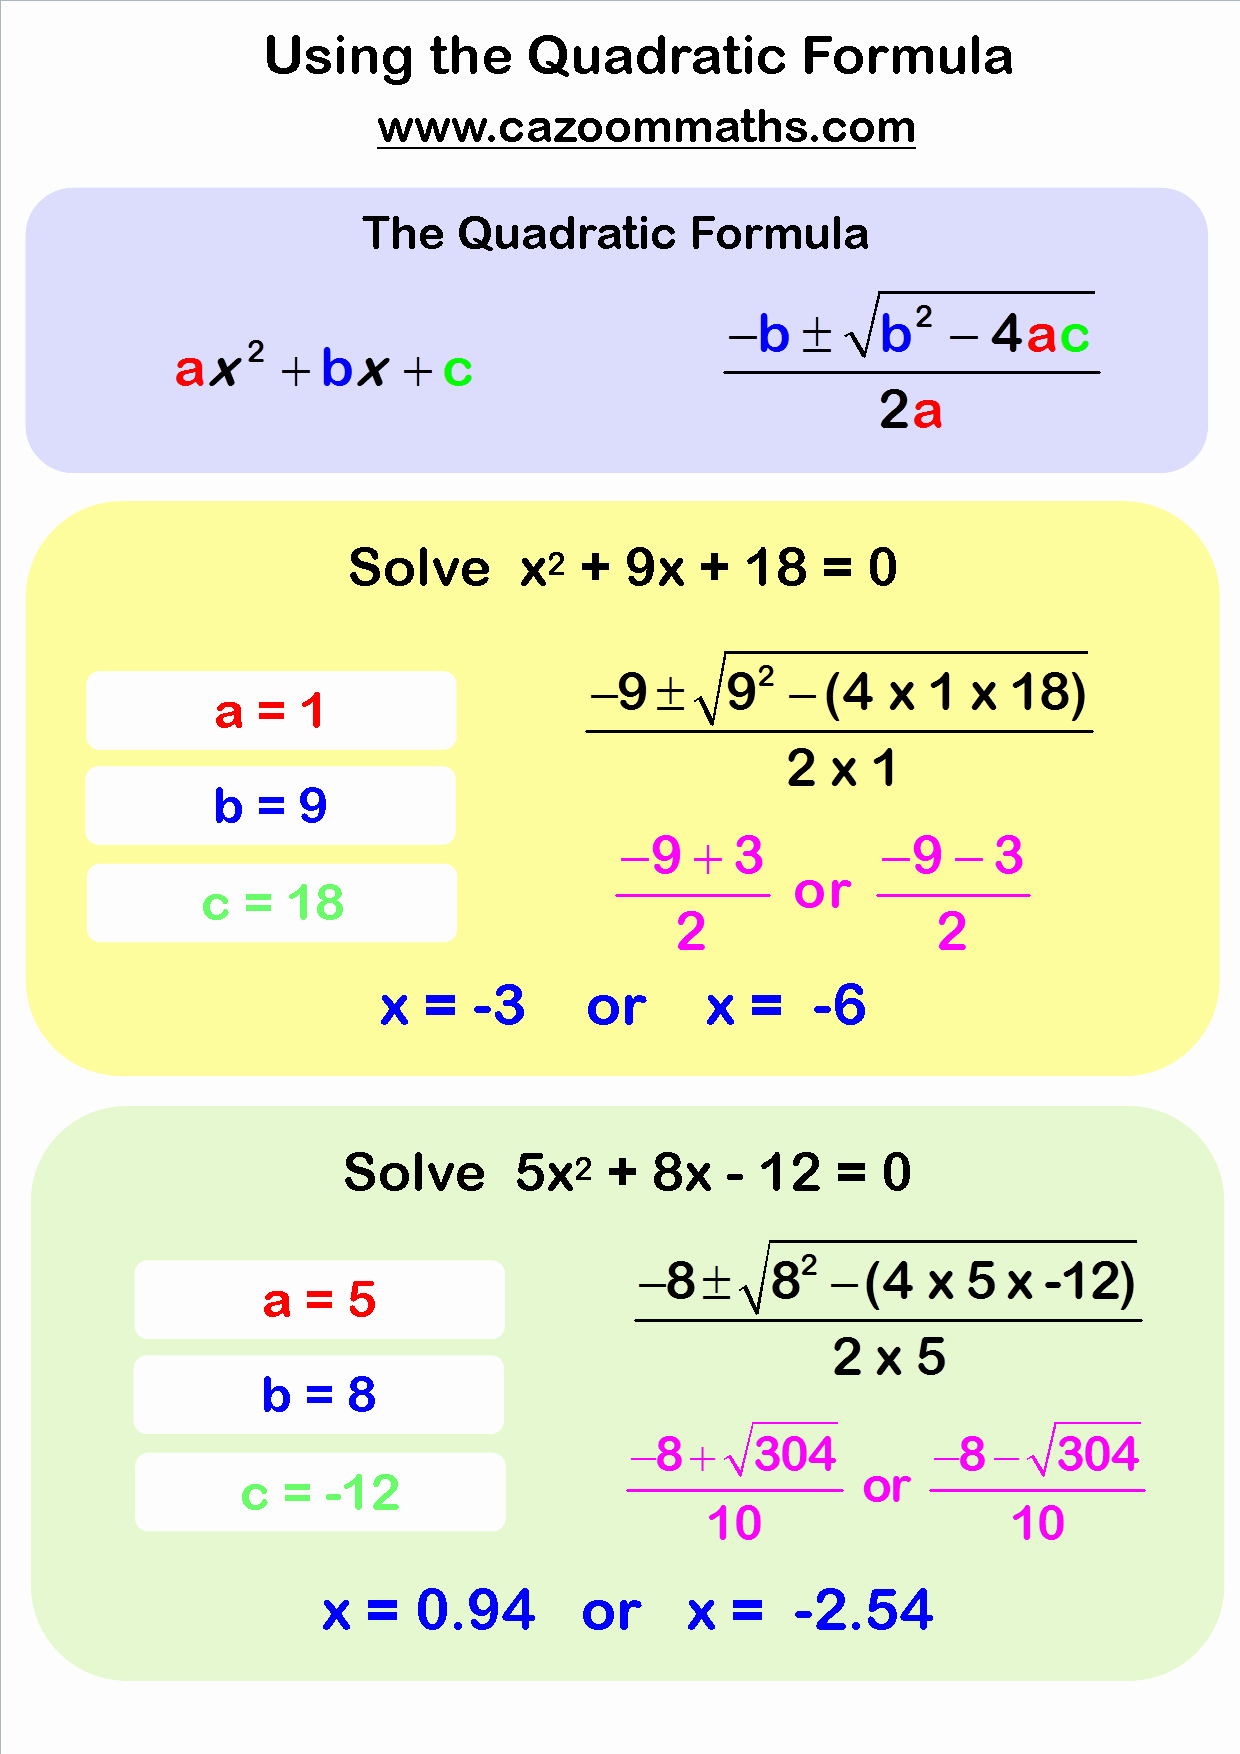 Solving Equations Worksheet Pdf Best Of Systems Linear and Quadratic Equations Worksheet